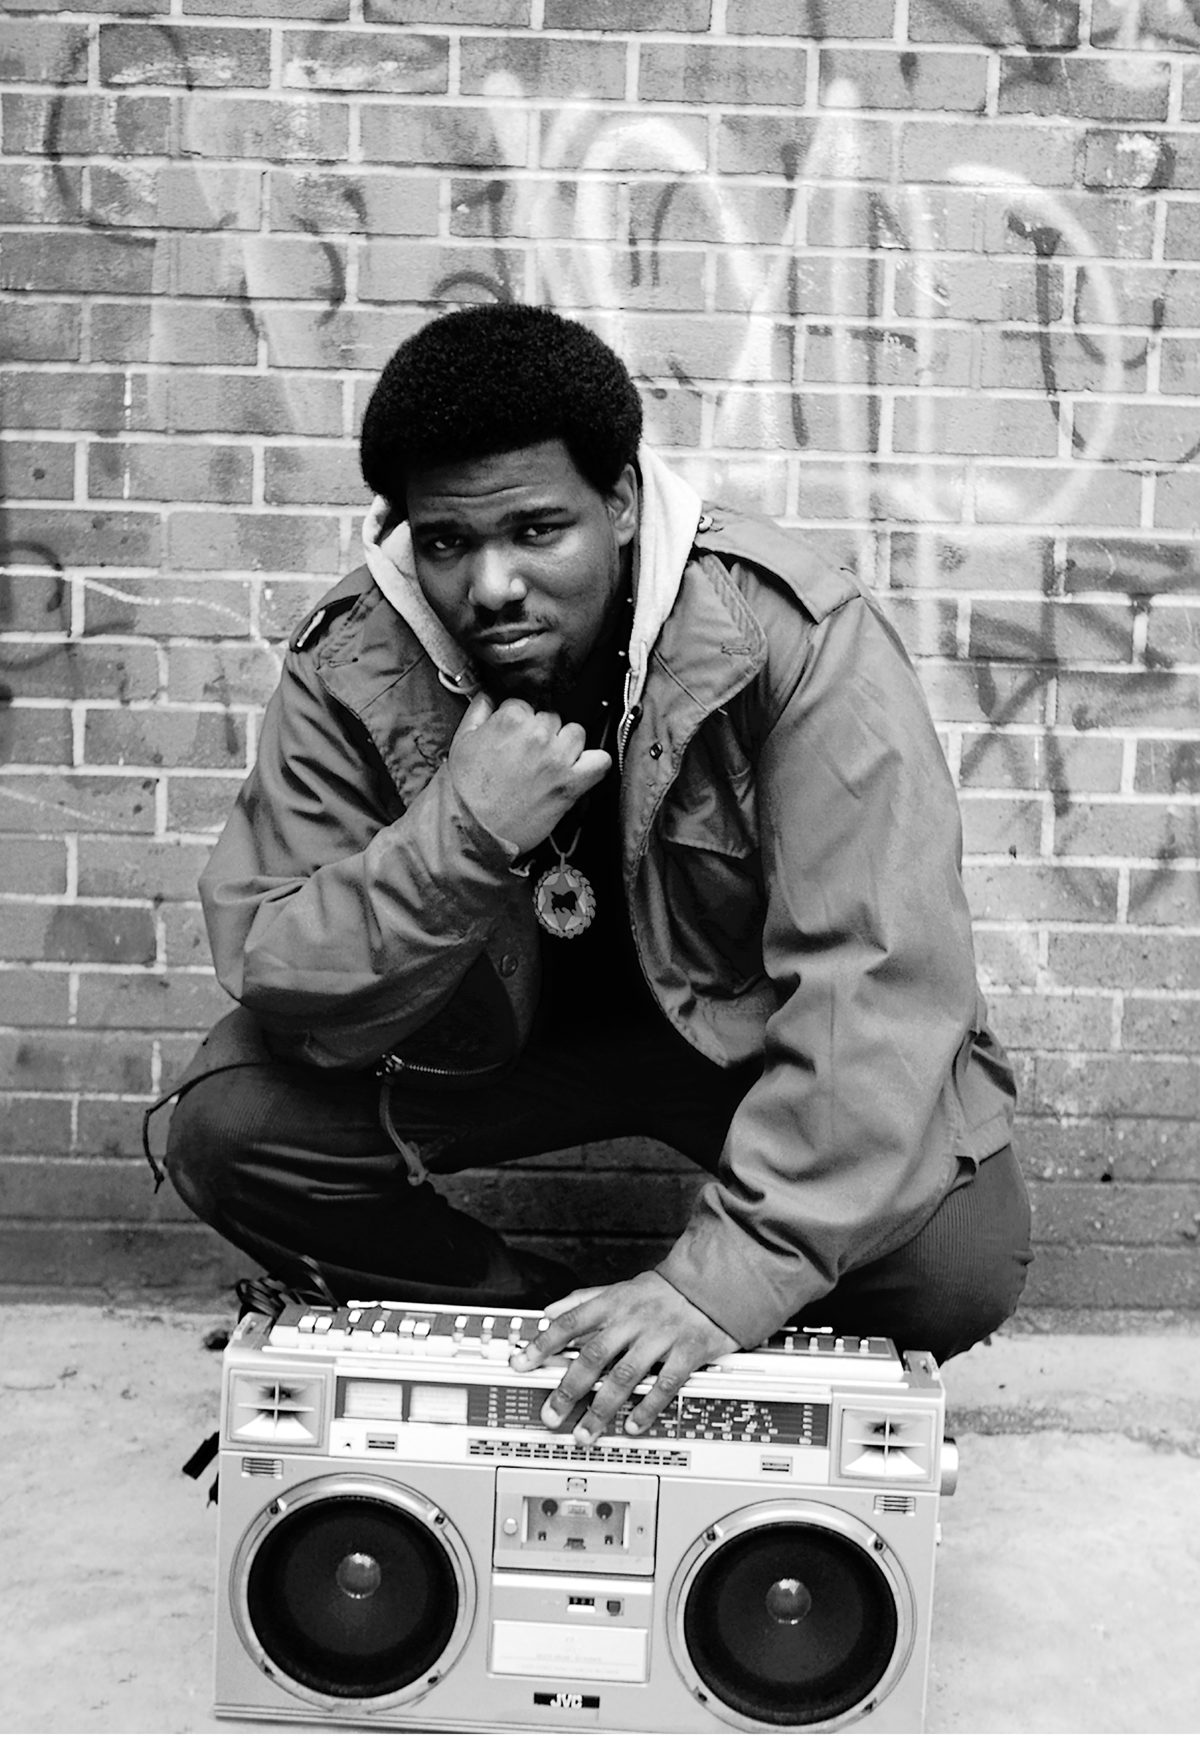 Afrika Bambataa 1980s NYC - by Janette Beckman